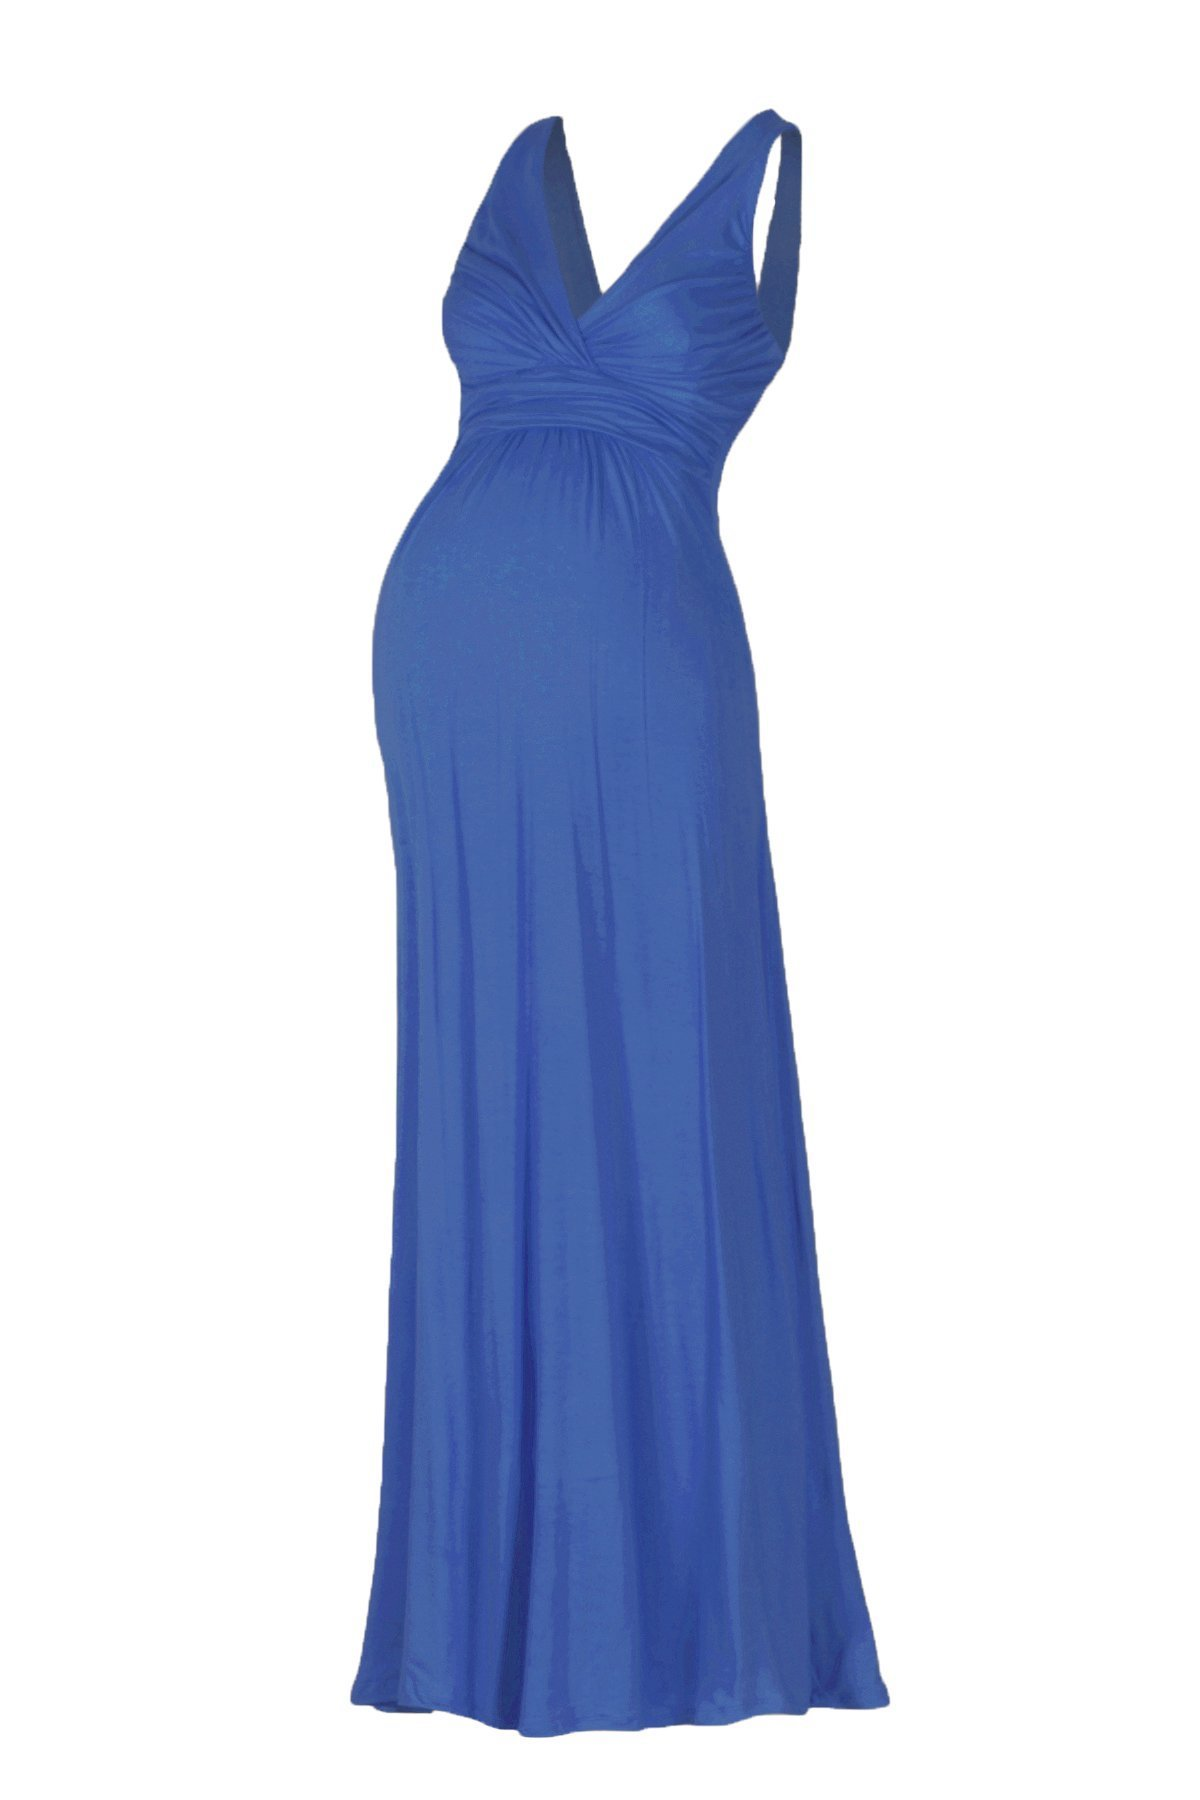 Beachcoco Women's Maternity Sleeveless V Neck Maxi Dress (S, Royal Blue)